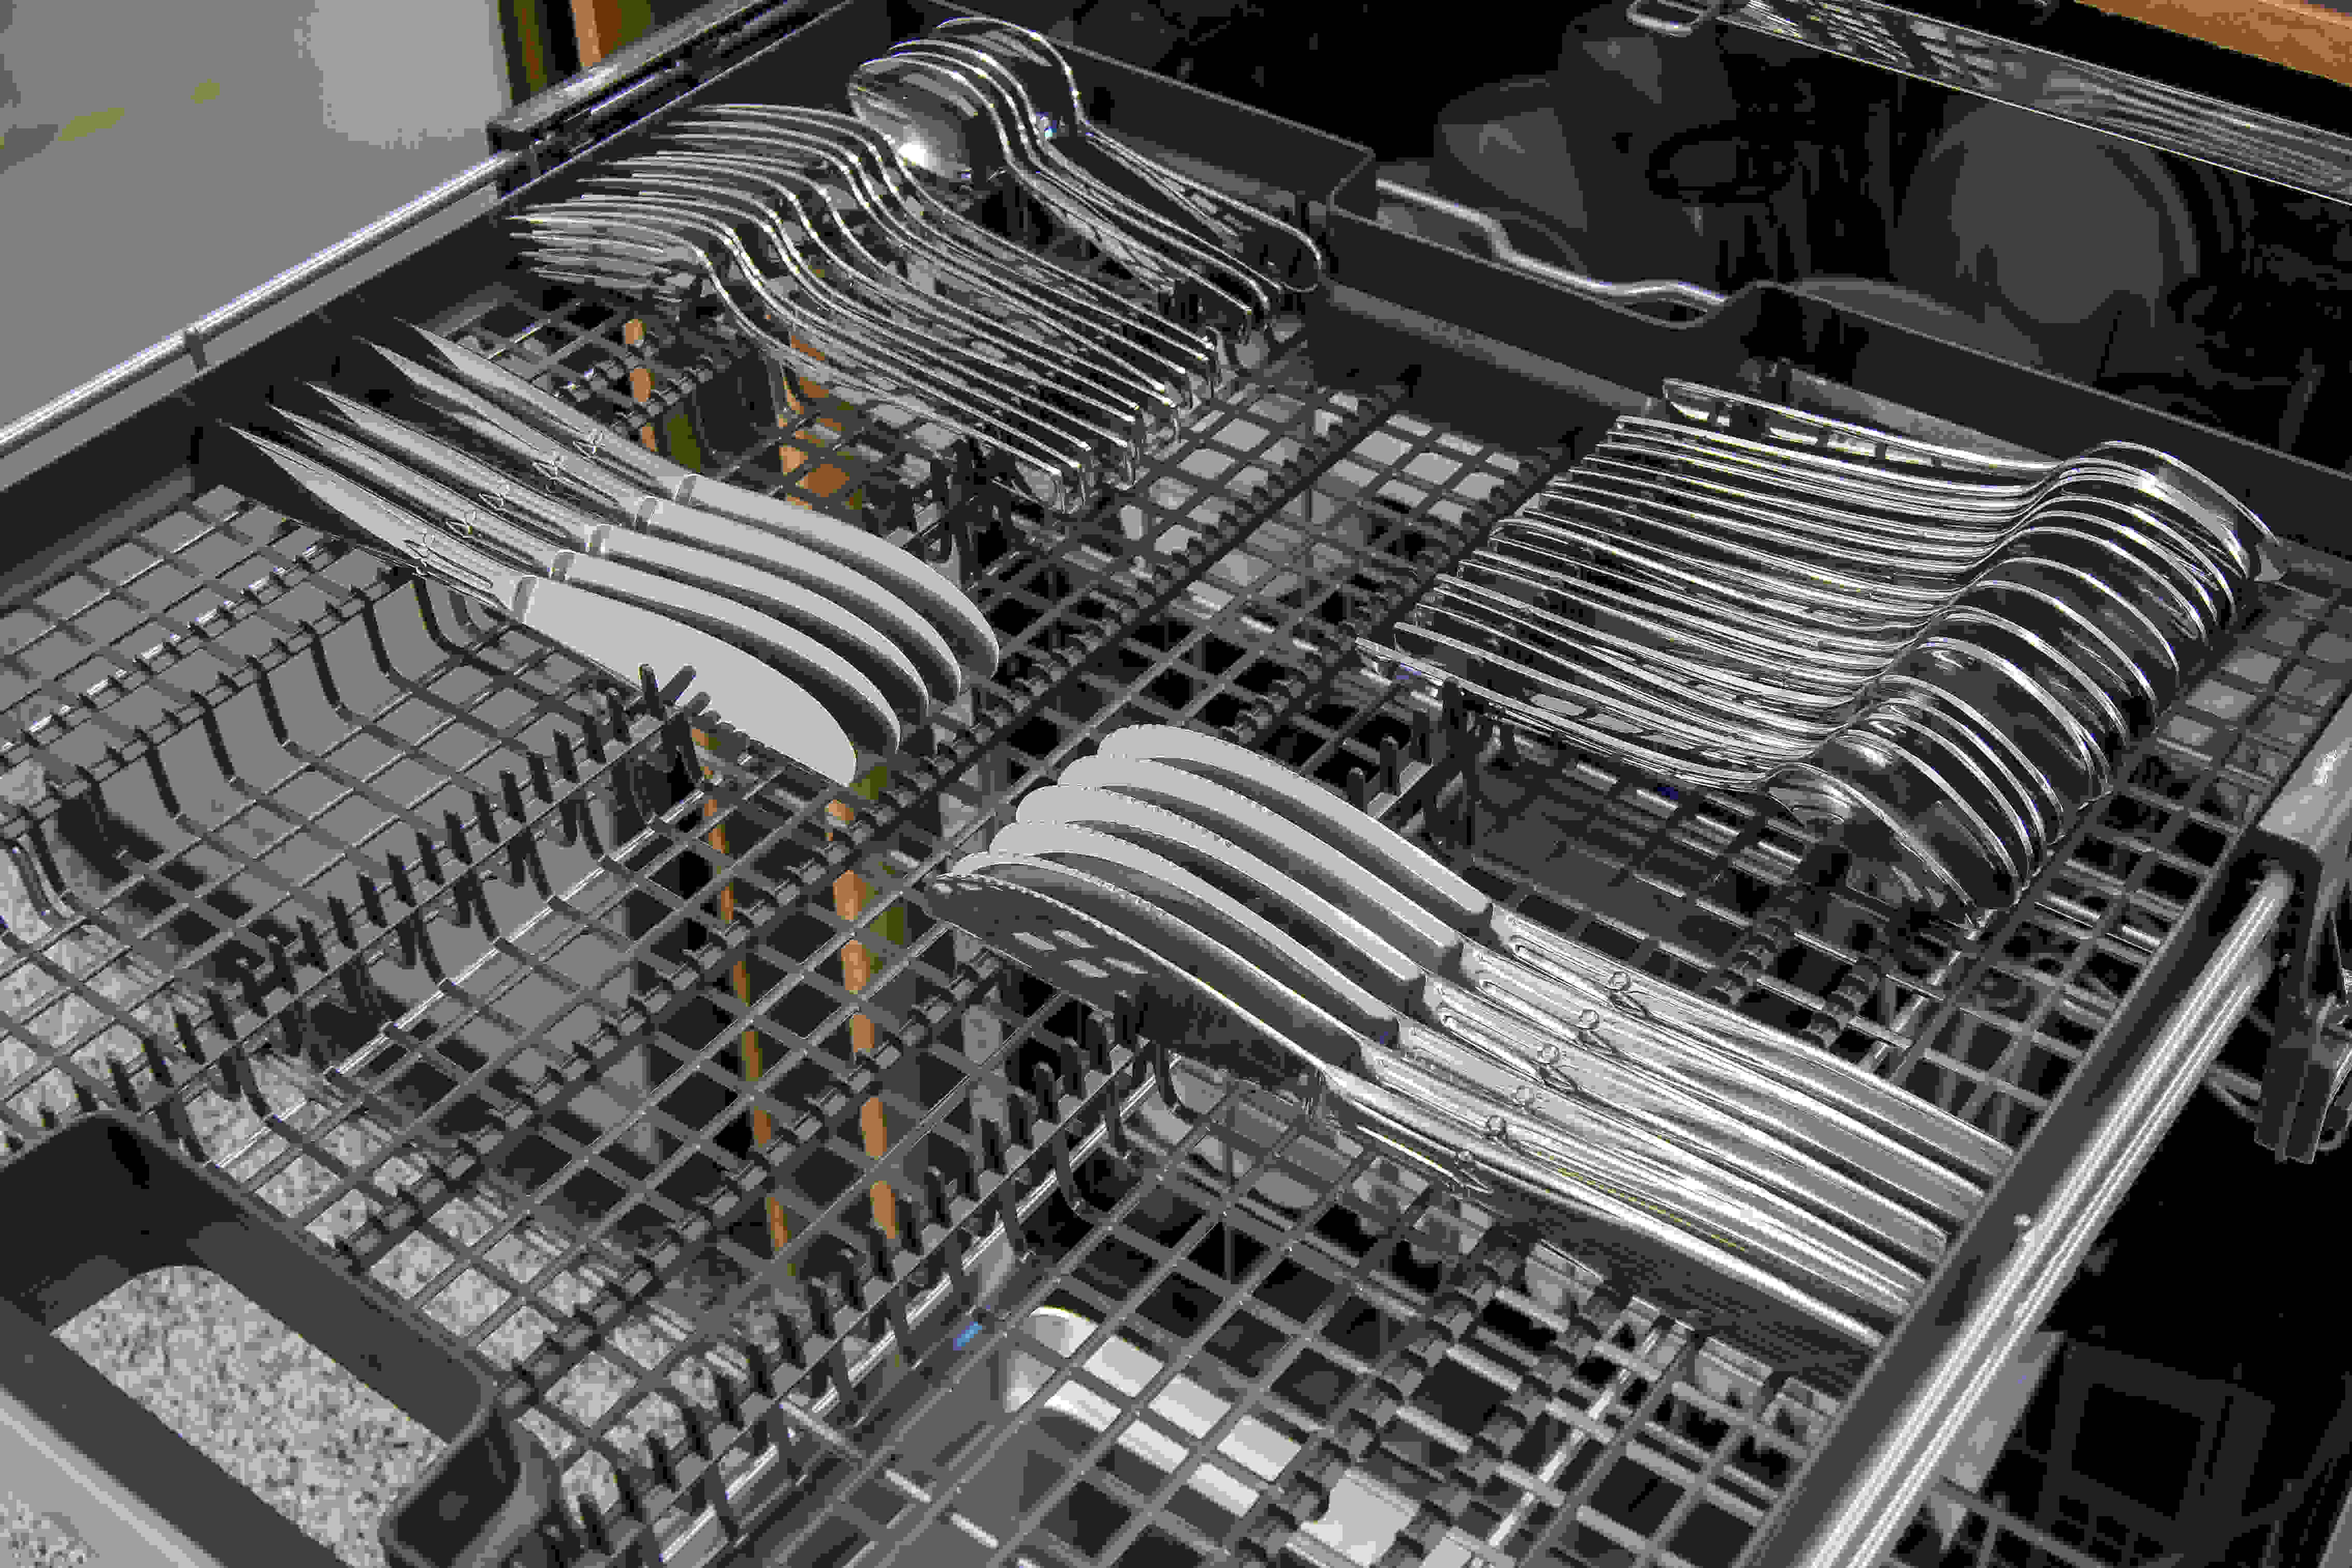 Electrolux EI24ID50QS third rack loaded with silverware